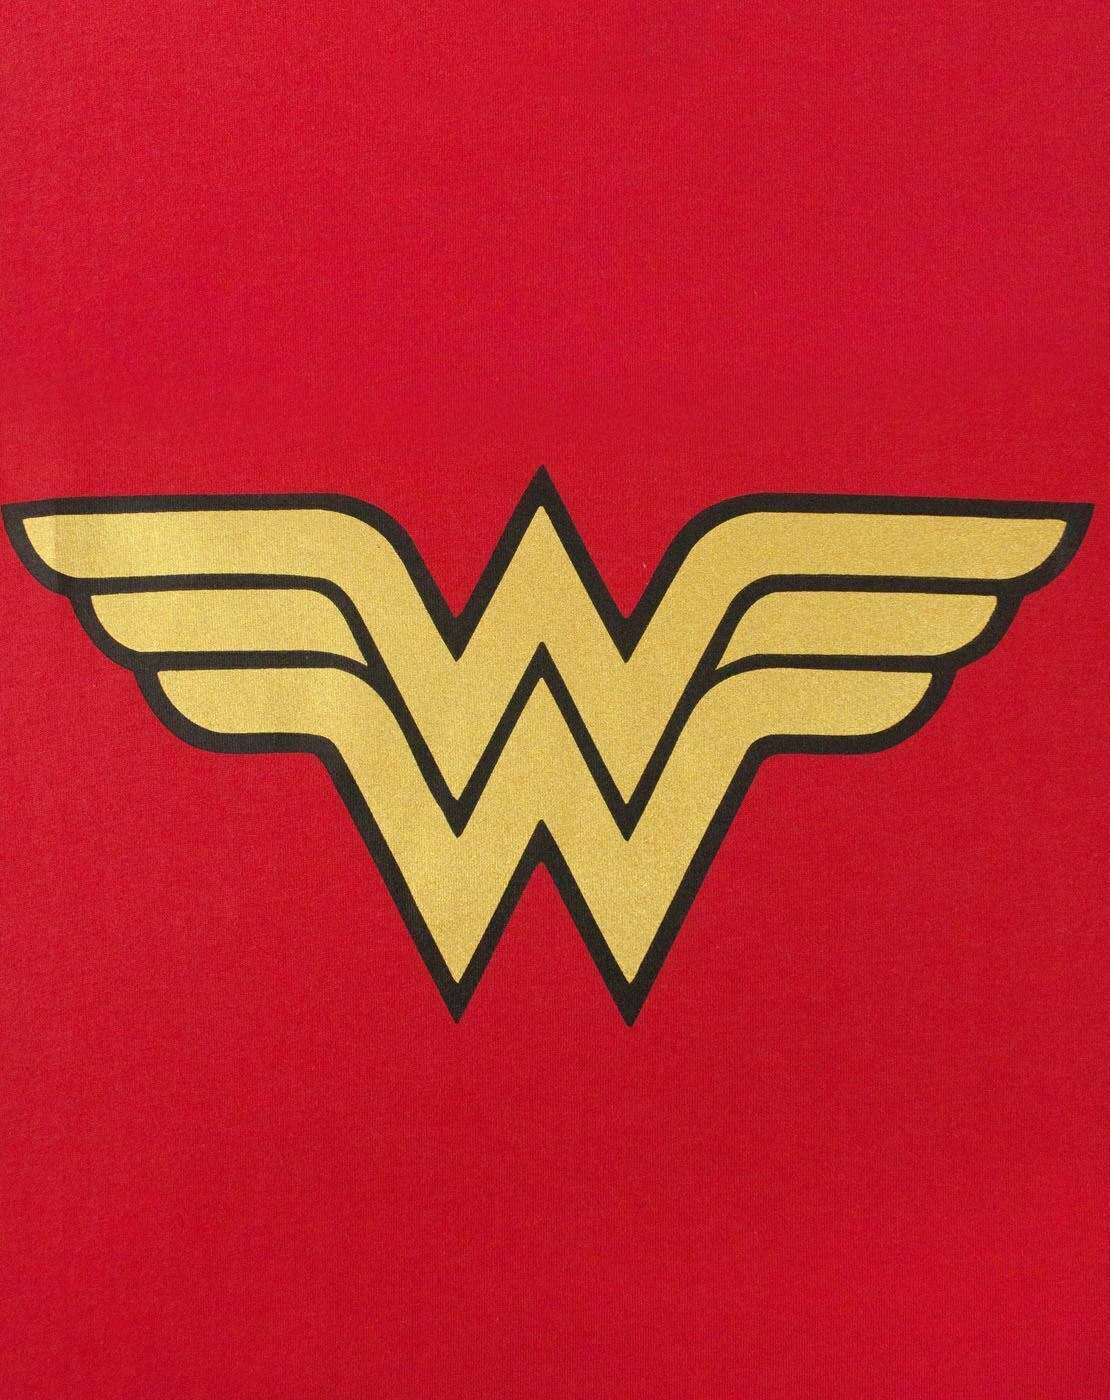 Wonder-Woman-DC-Comics-Metallic-Gold-Logo-Women-039-s-Red-Superhero-T-Shirt thumbnail 11